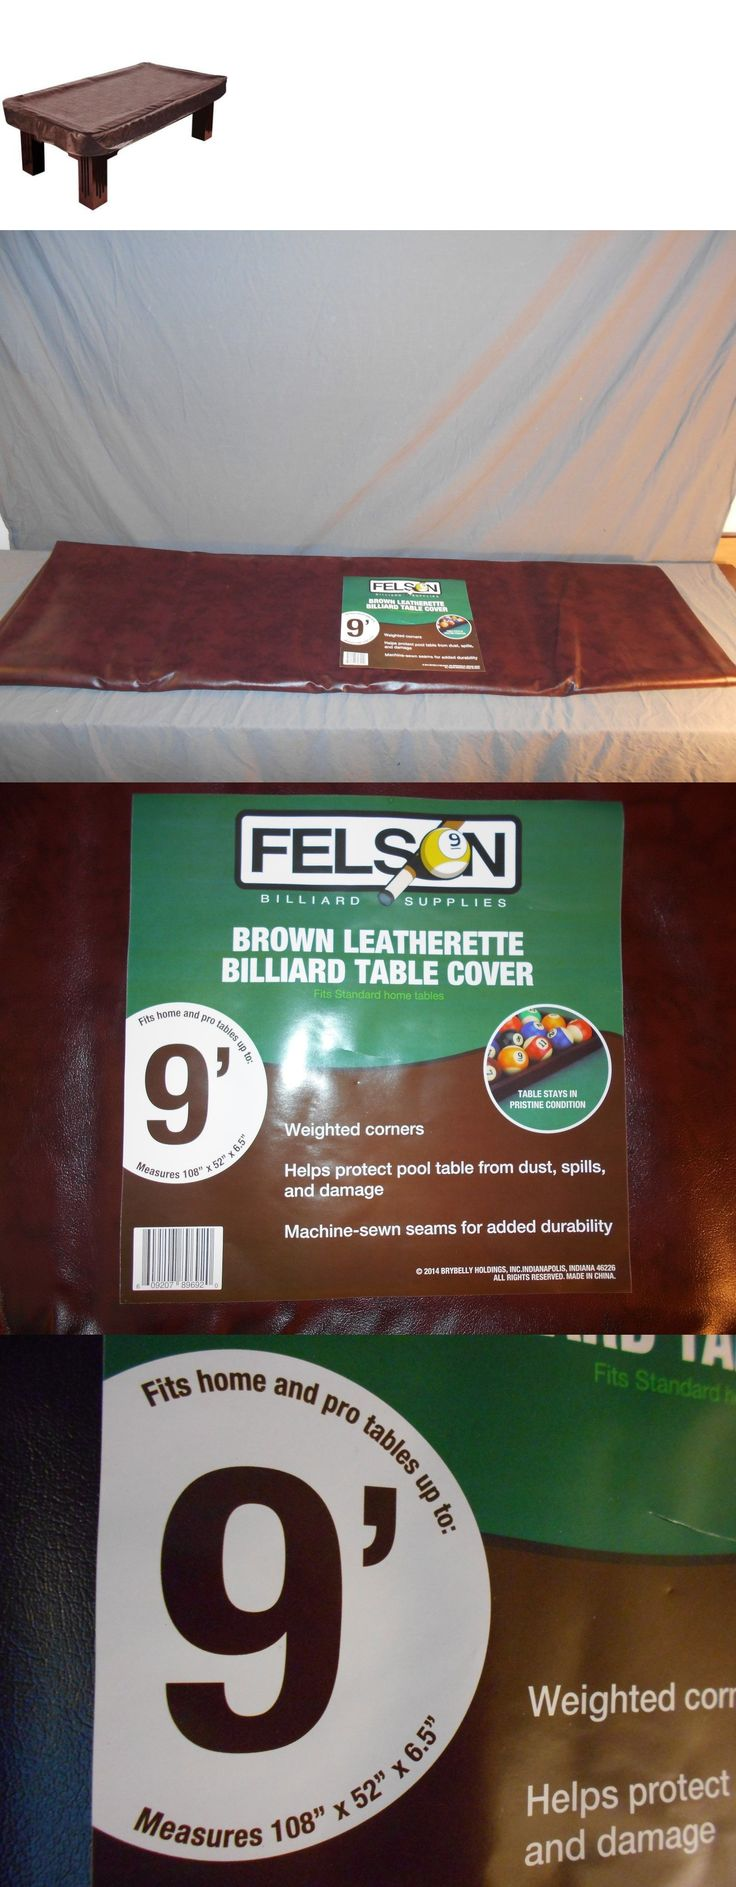 Table Covers 91569: Felson 9 Foot Brown Heavy Leather Billiard Pool Table Cover Protects (Open Box) -> BUY IT NOW ONLY: $56.99 on eBay!